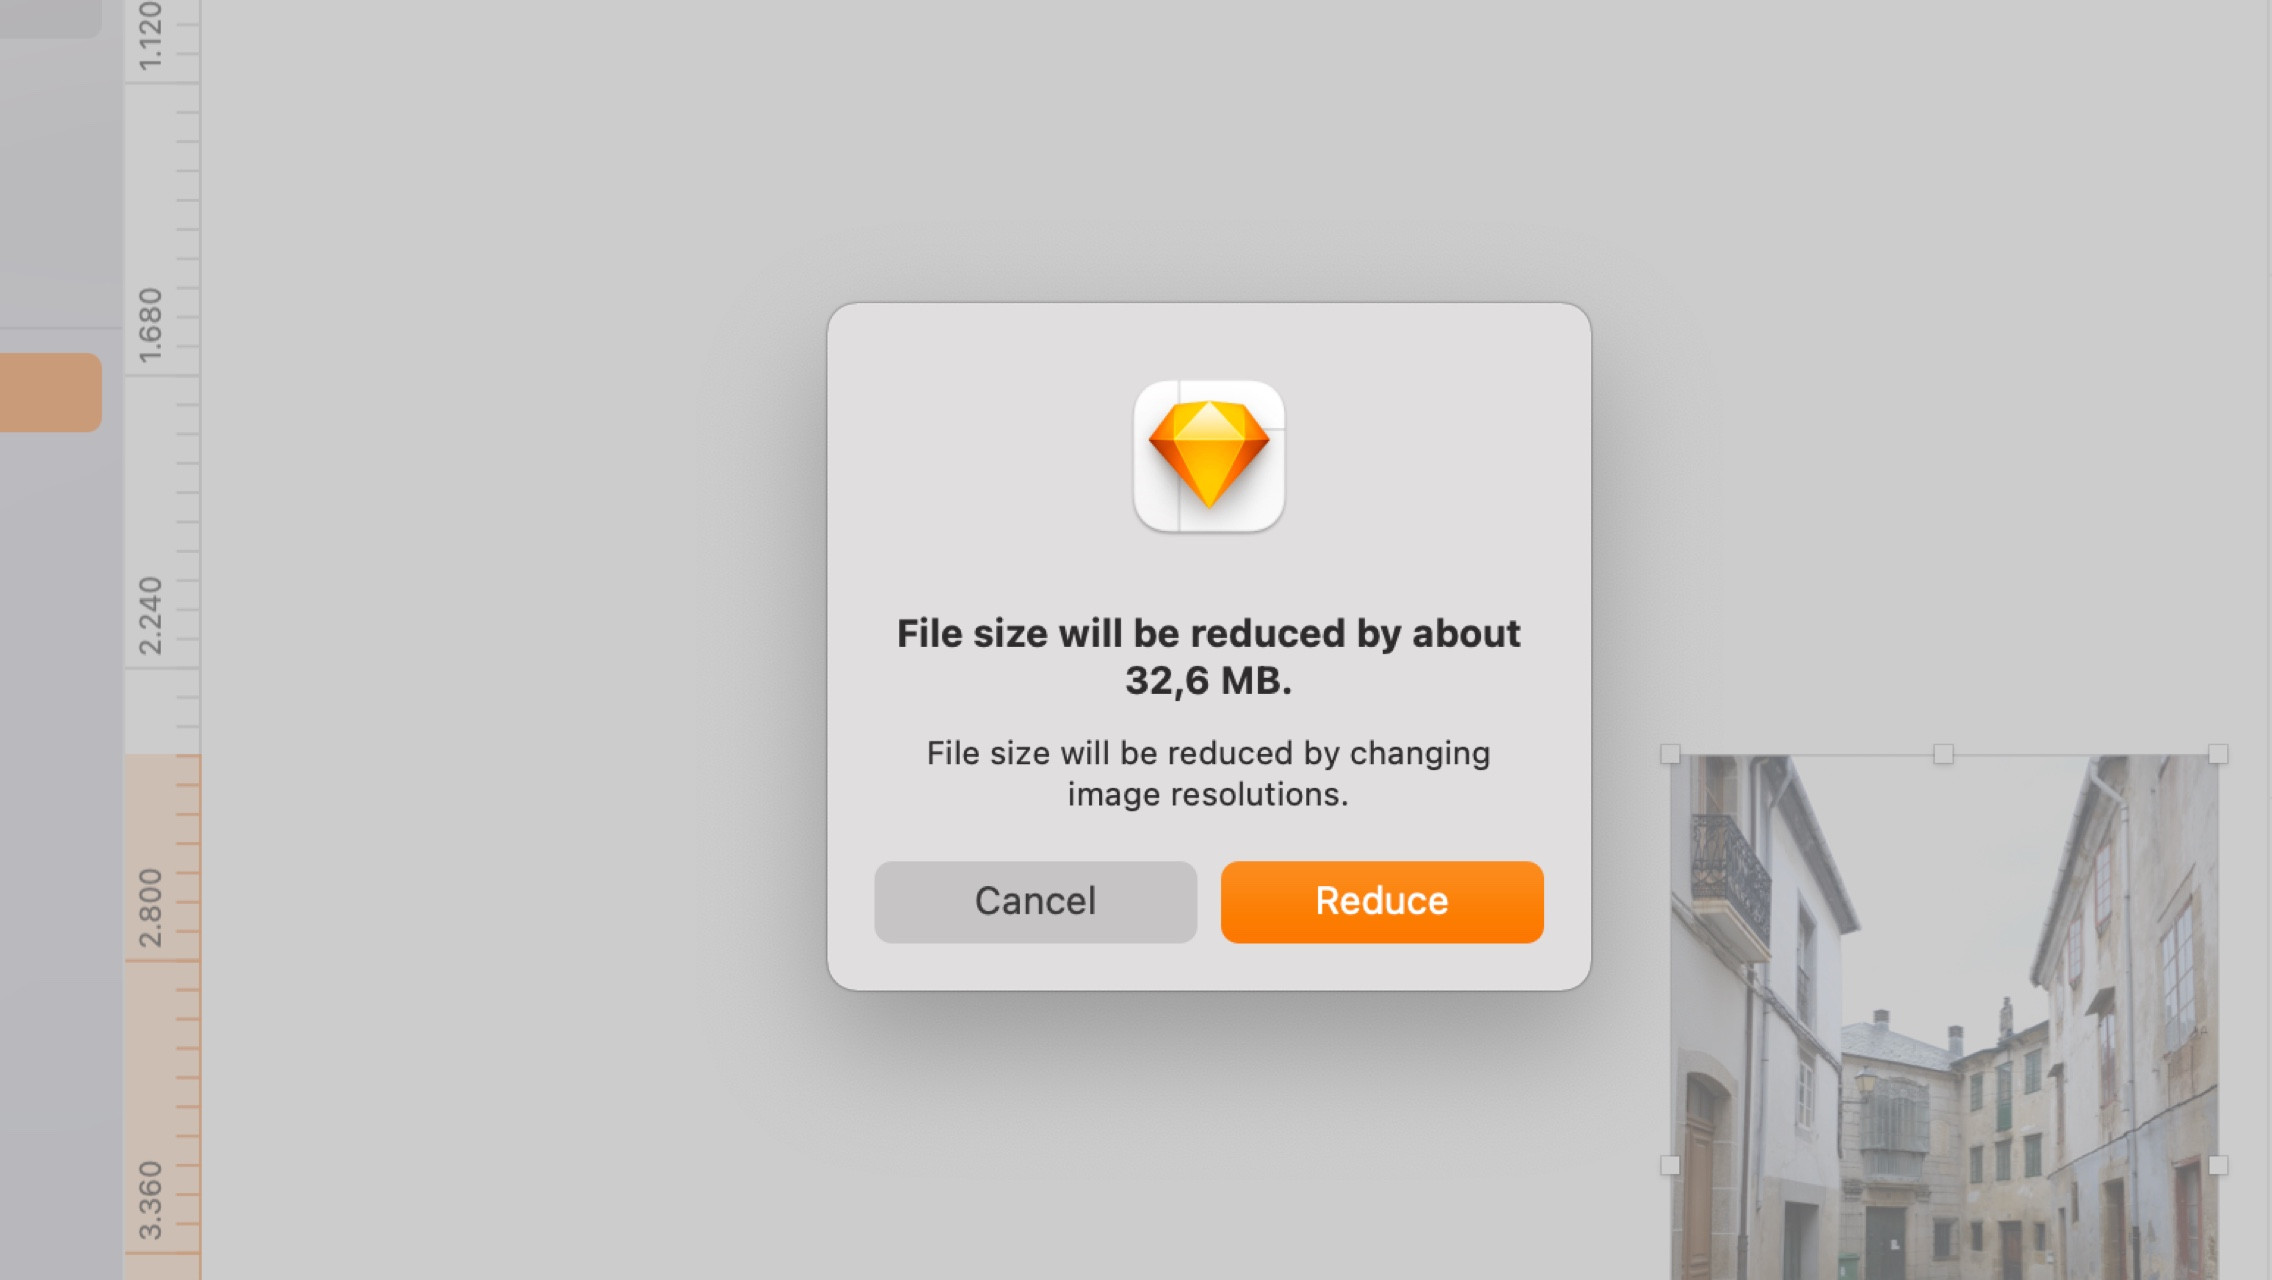 An image showing the file size reduction sheet in the Mac app